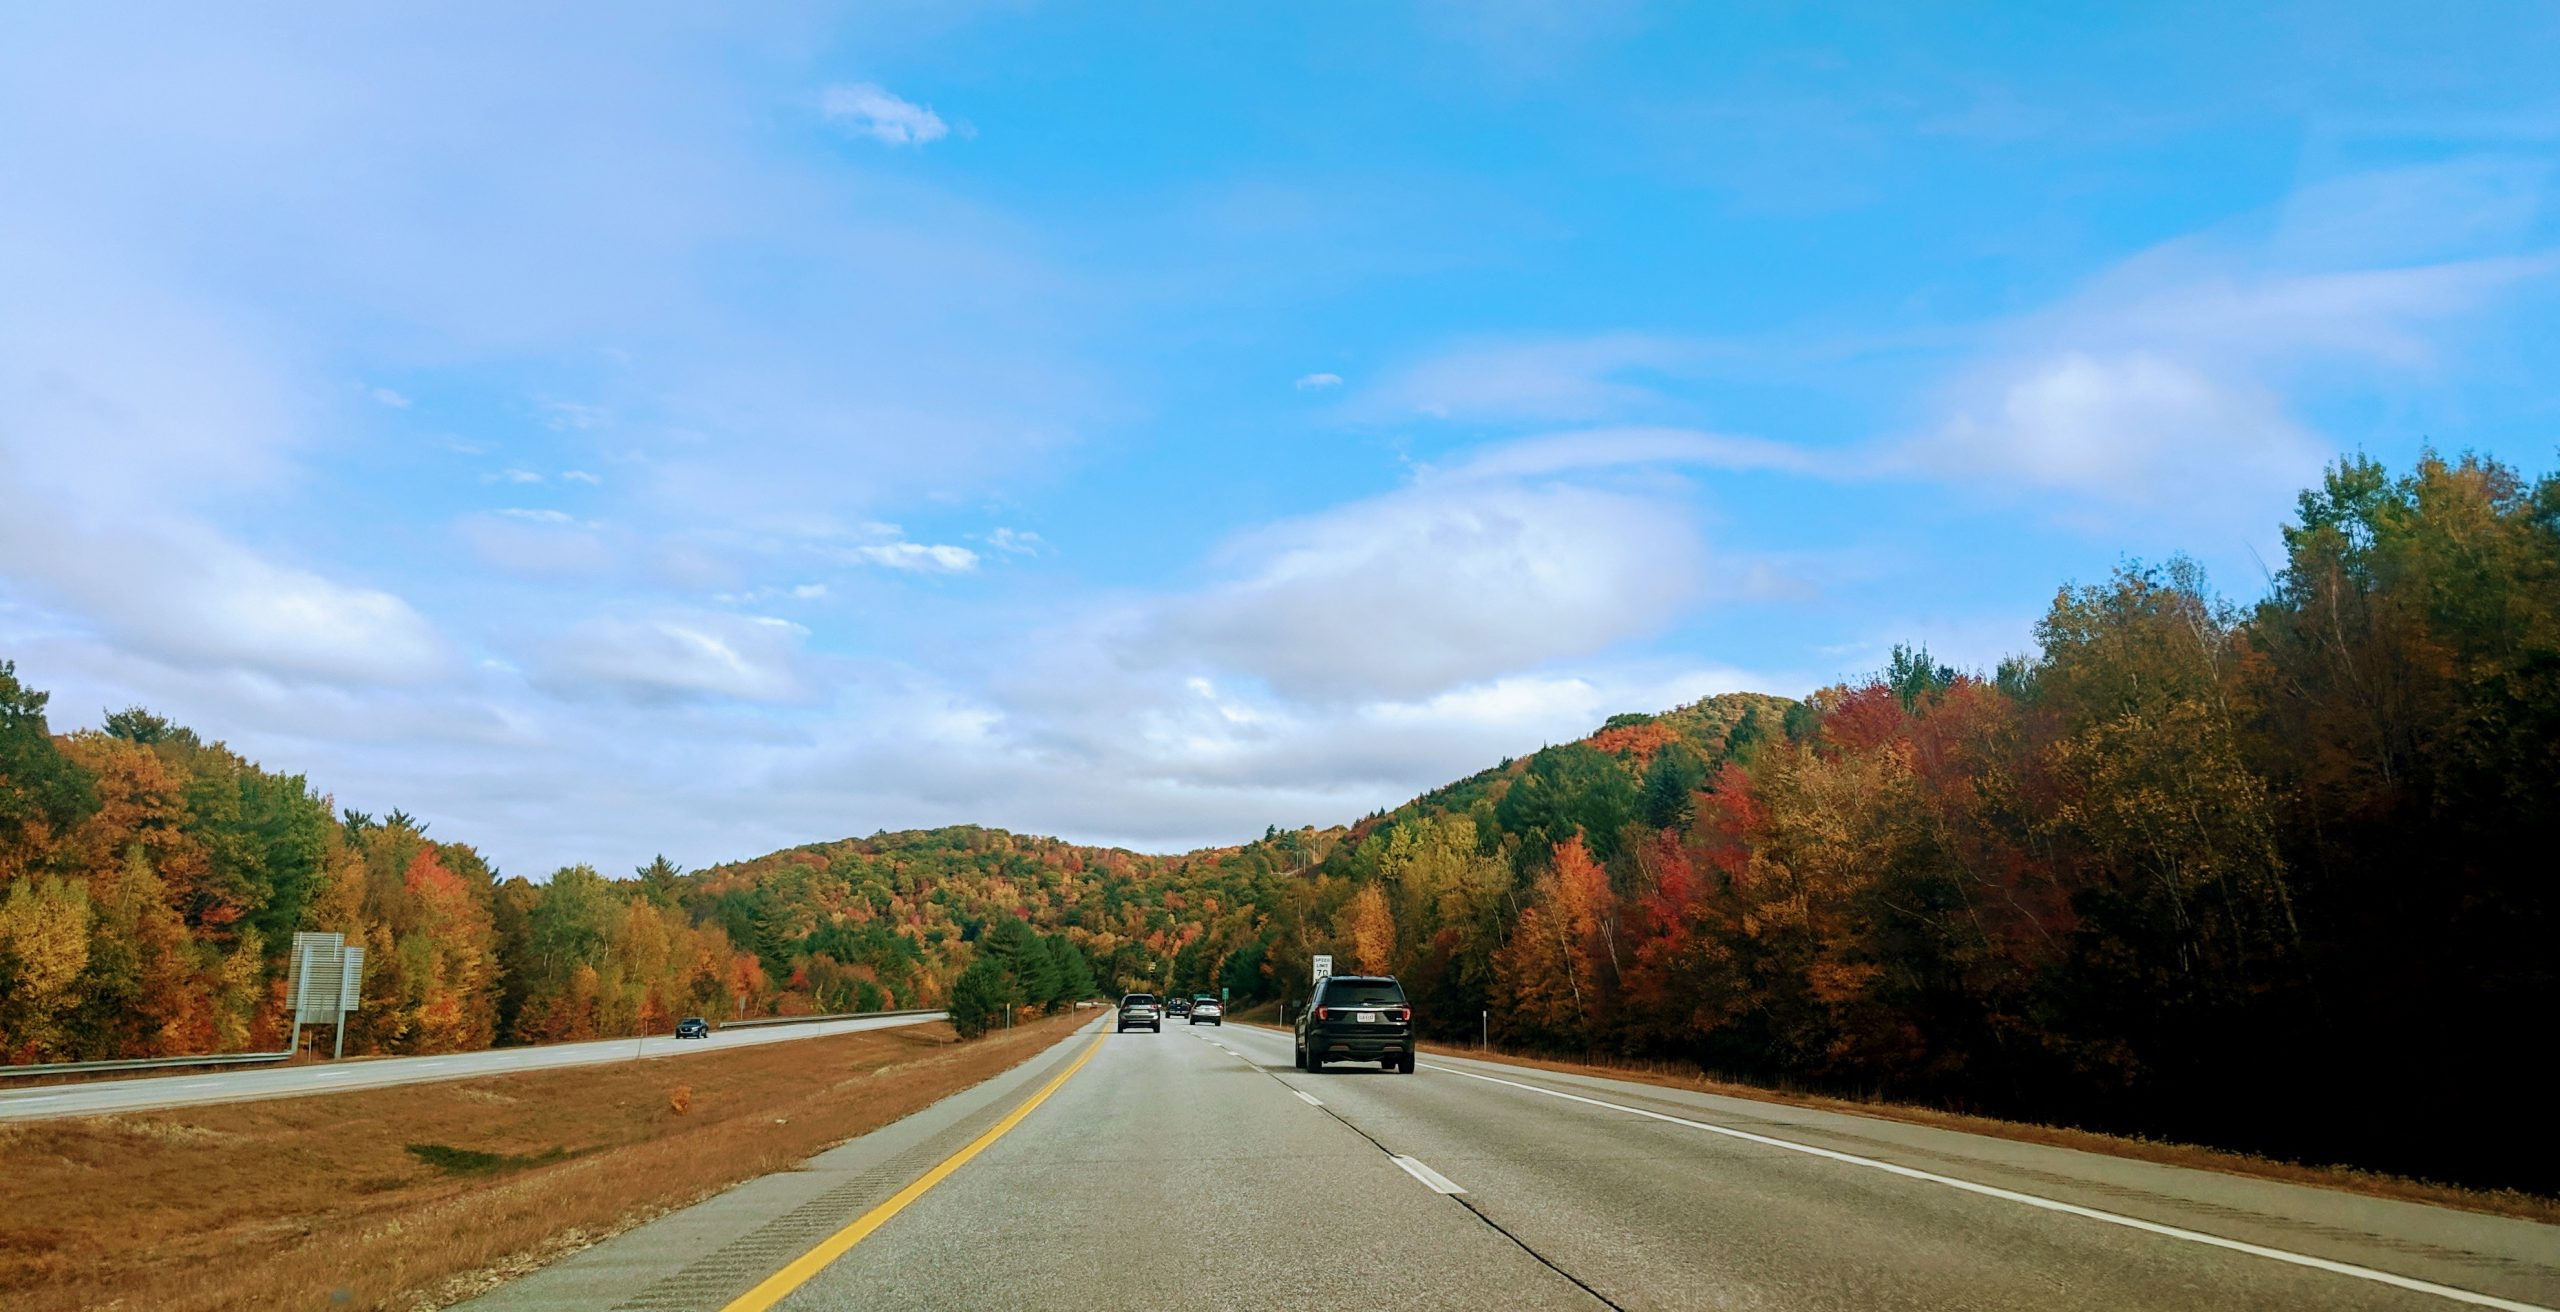 Fall Foliage along the highway in Fraconia Notch State Park